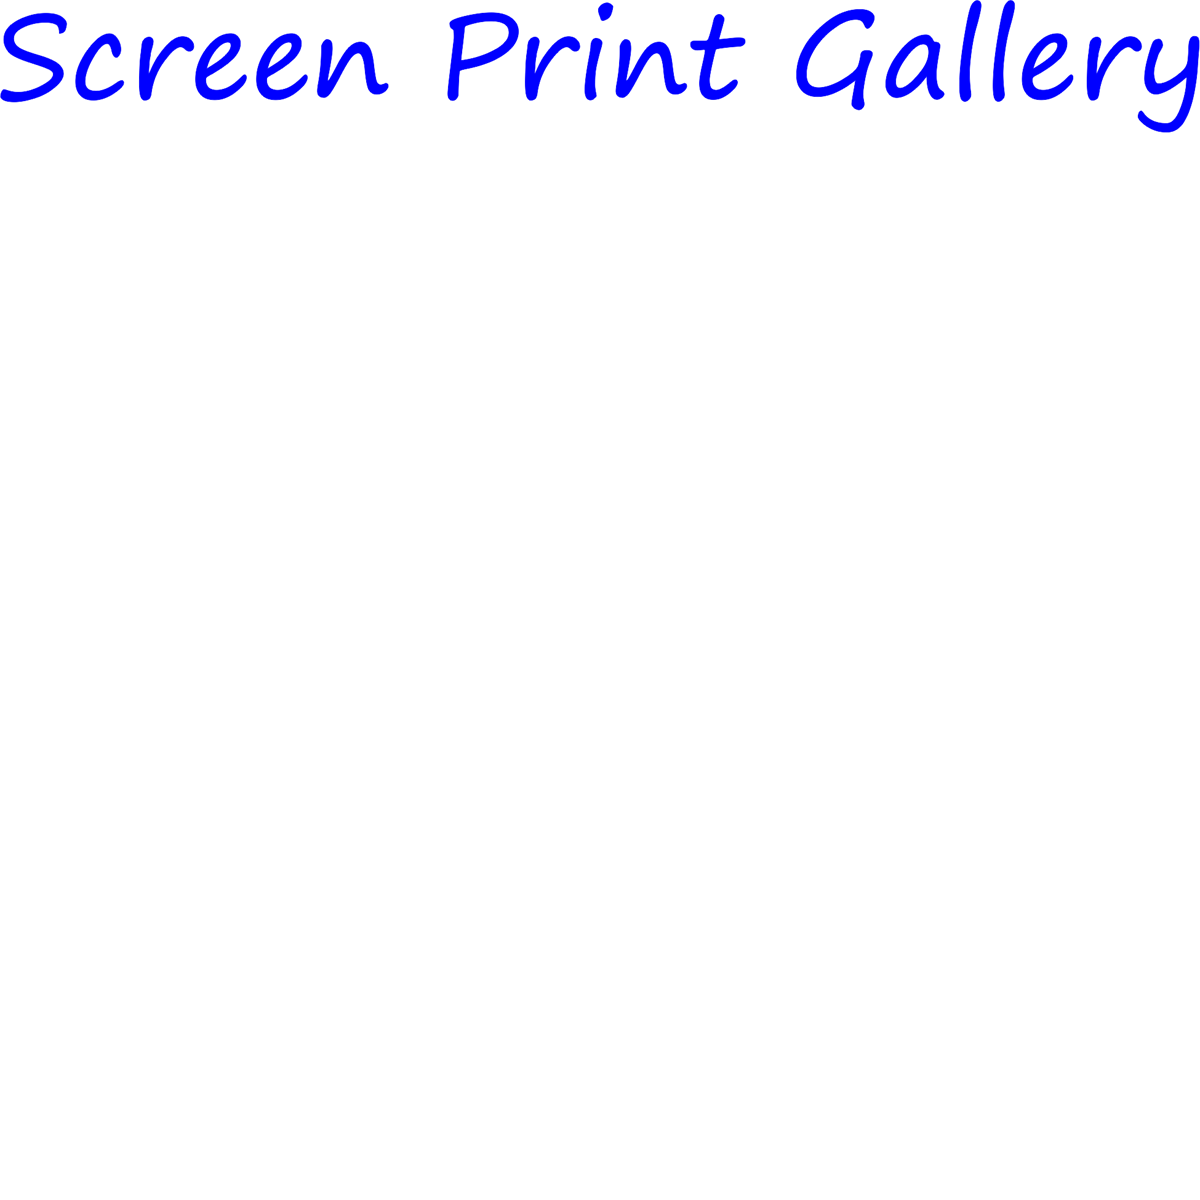 screen print gallery